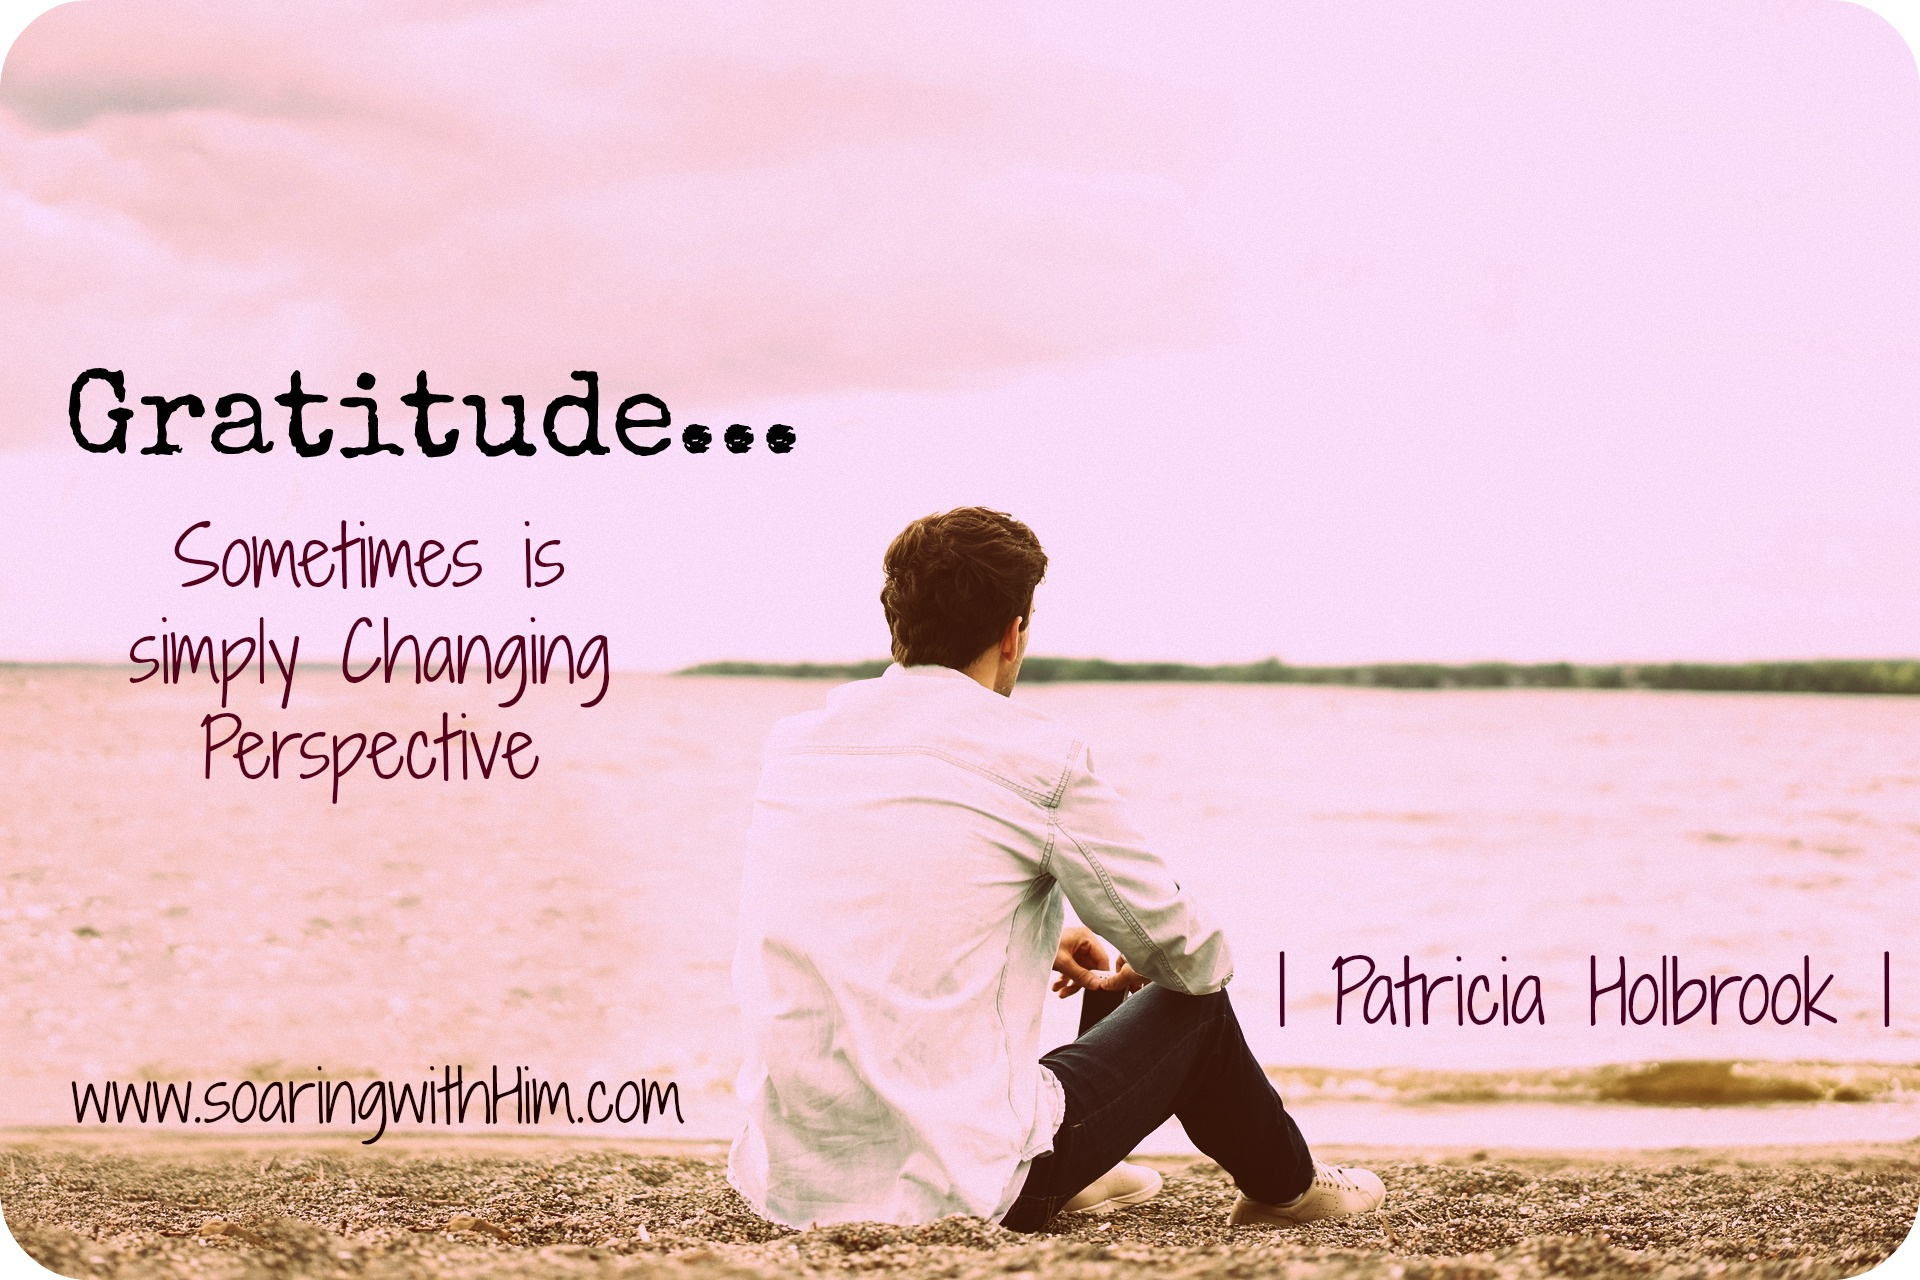 gratitude-changing-perspective-ajc-11-26-16